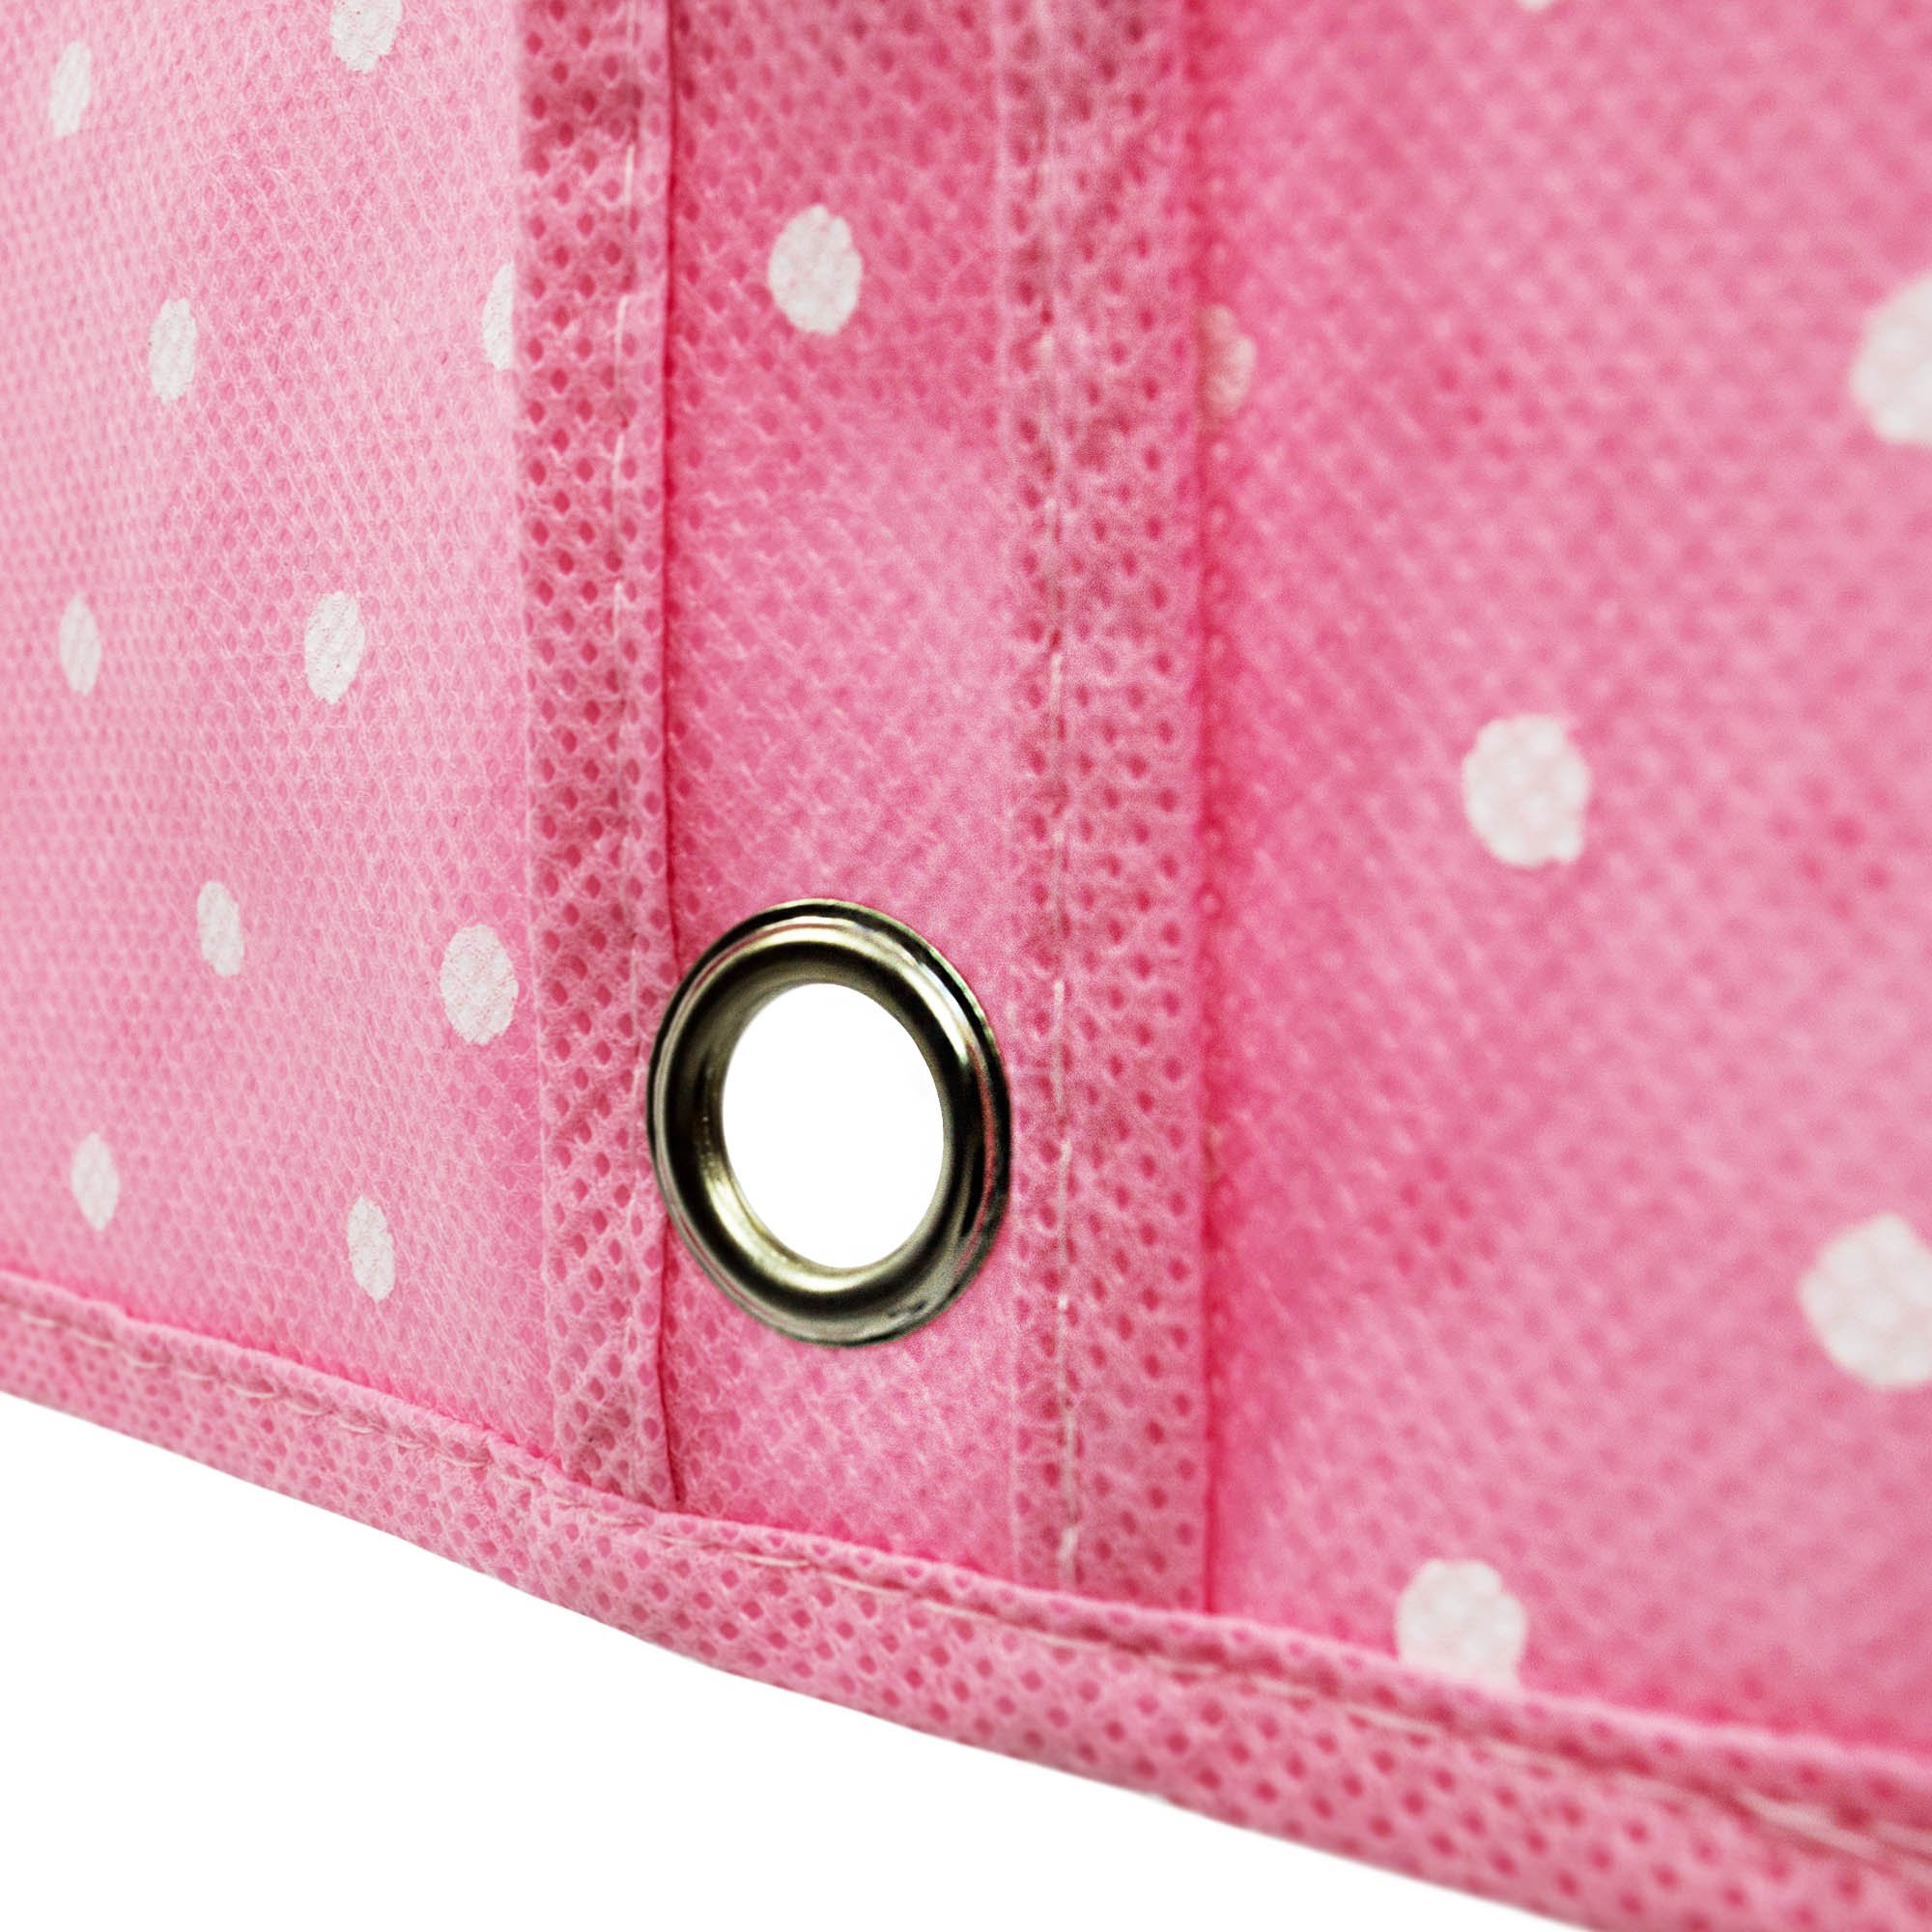 HANGERWORLD Pink 45inch Polka Dot Breathable Zipped Garment Dress Suit Cover Clothes Travel Bag Protectors by HANGERWORLD (Image #6)